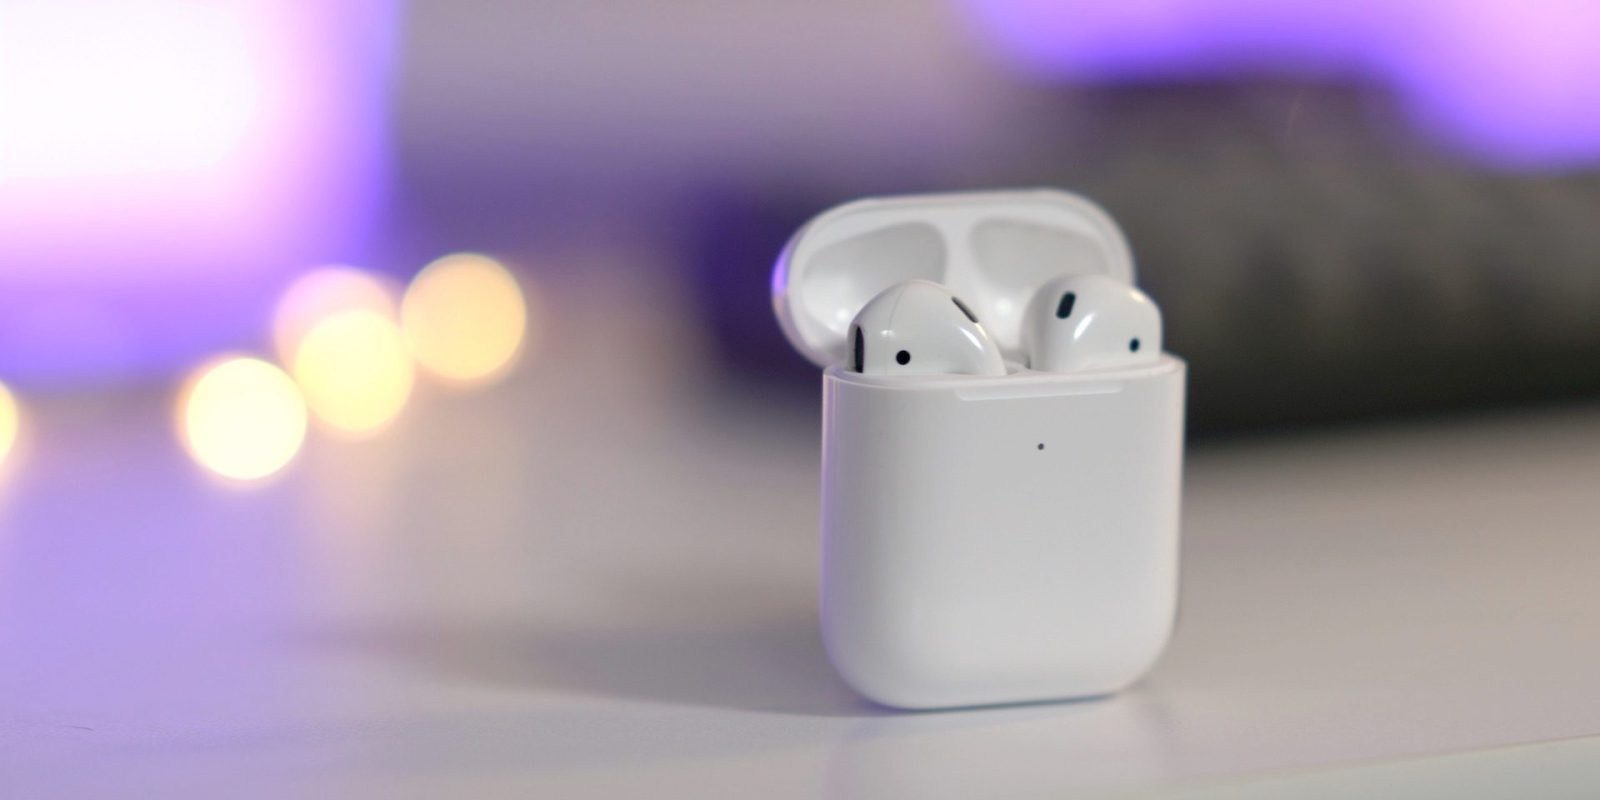 PSA: Here's the keyword to get your dead AirPods replaced for less